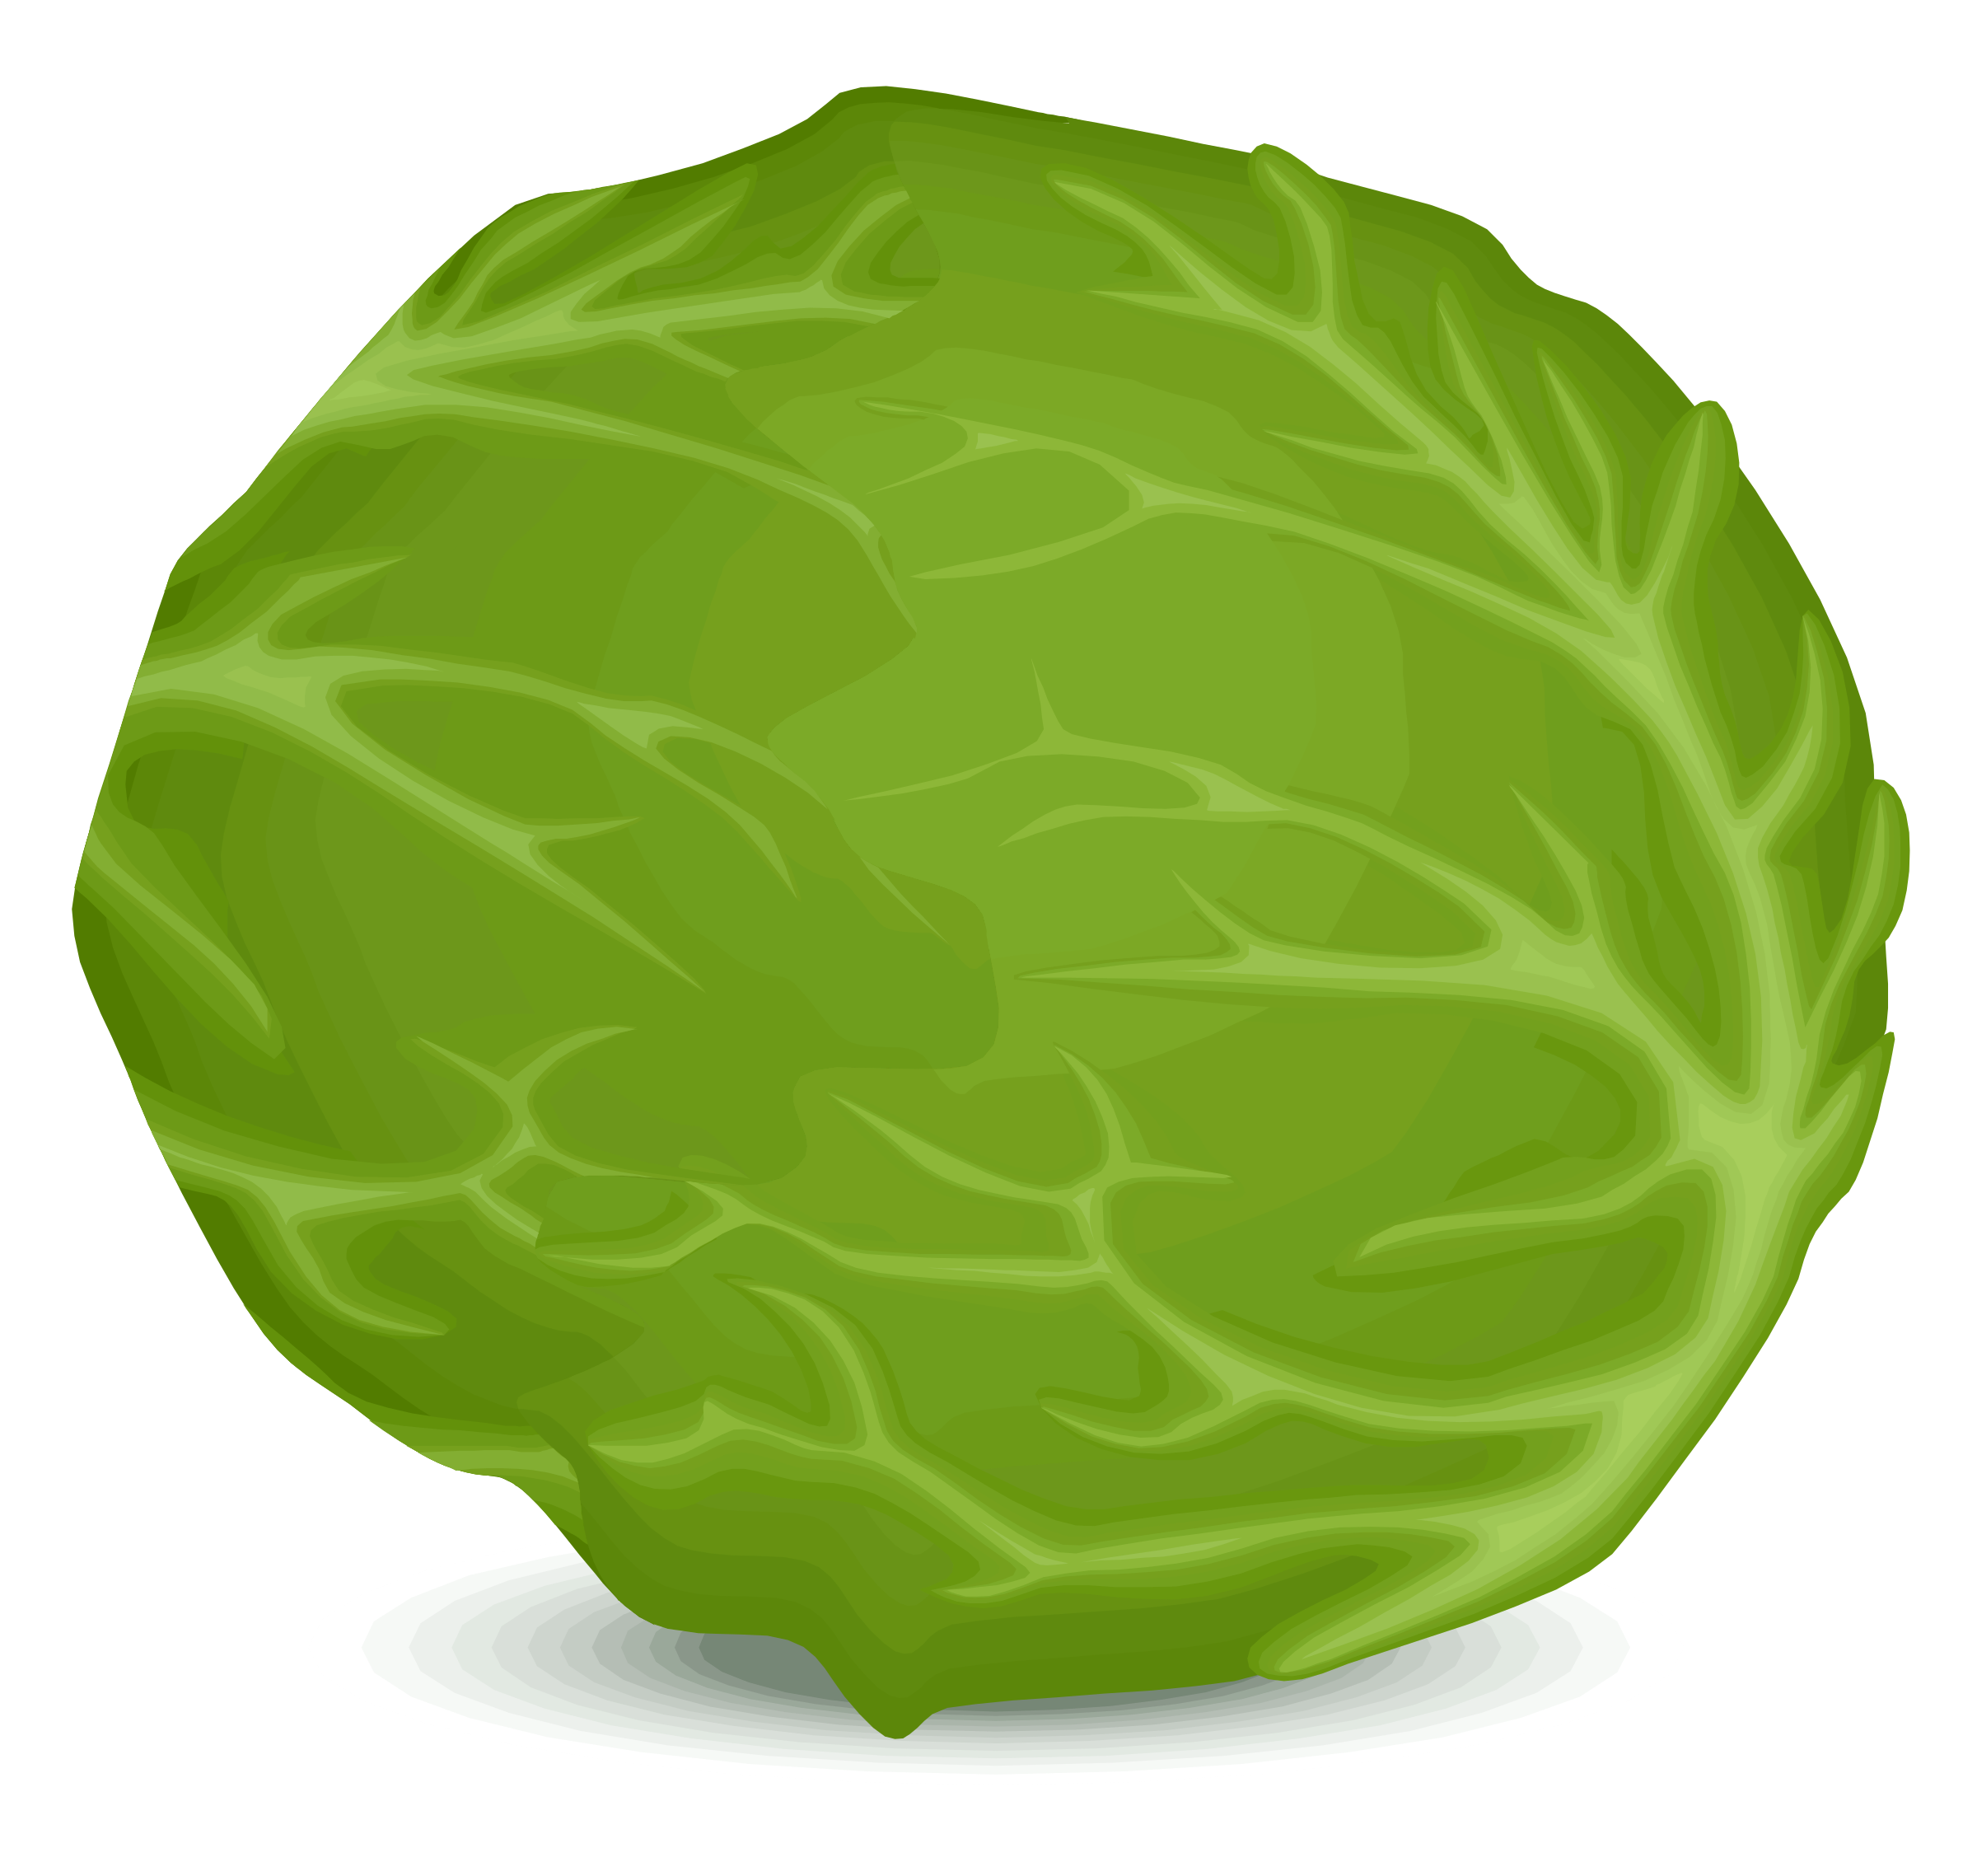 png transparent stock Collection of free cabbaging. Cabbage clipart letus.